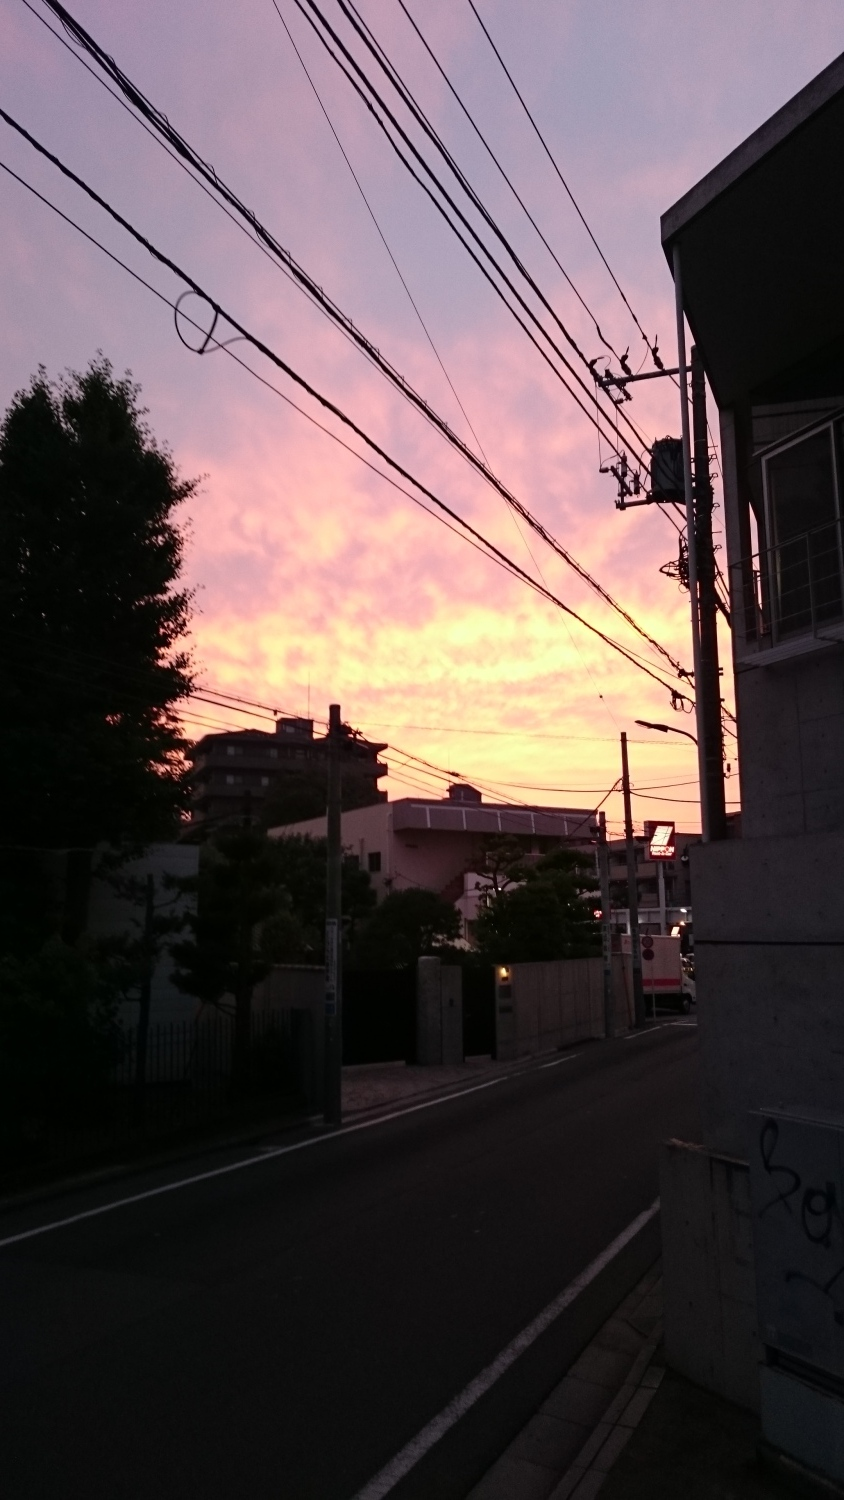 Sunset image of early summer